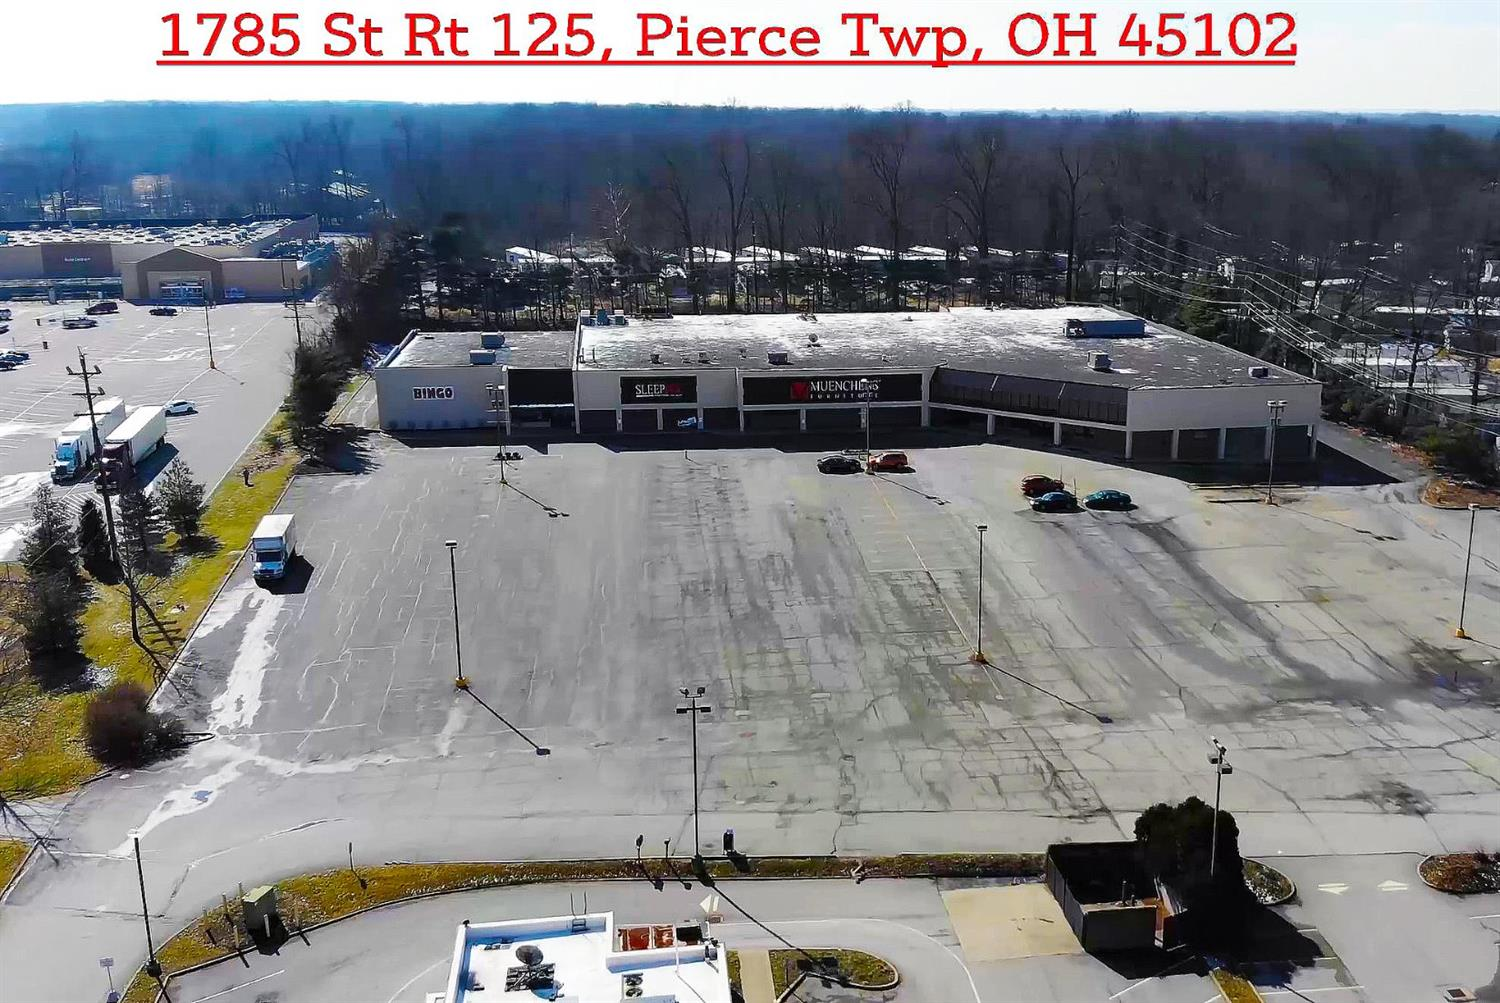 1785 St Rt 125 Pierce Twp., OH